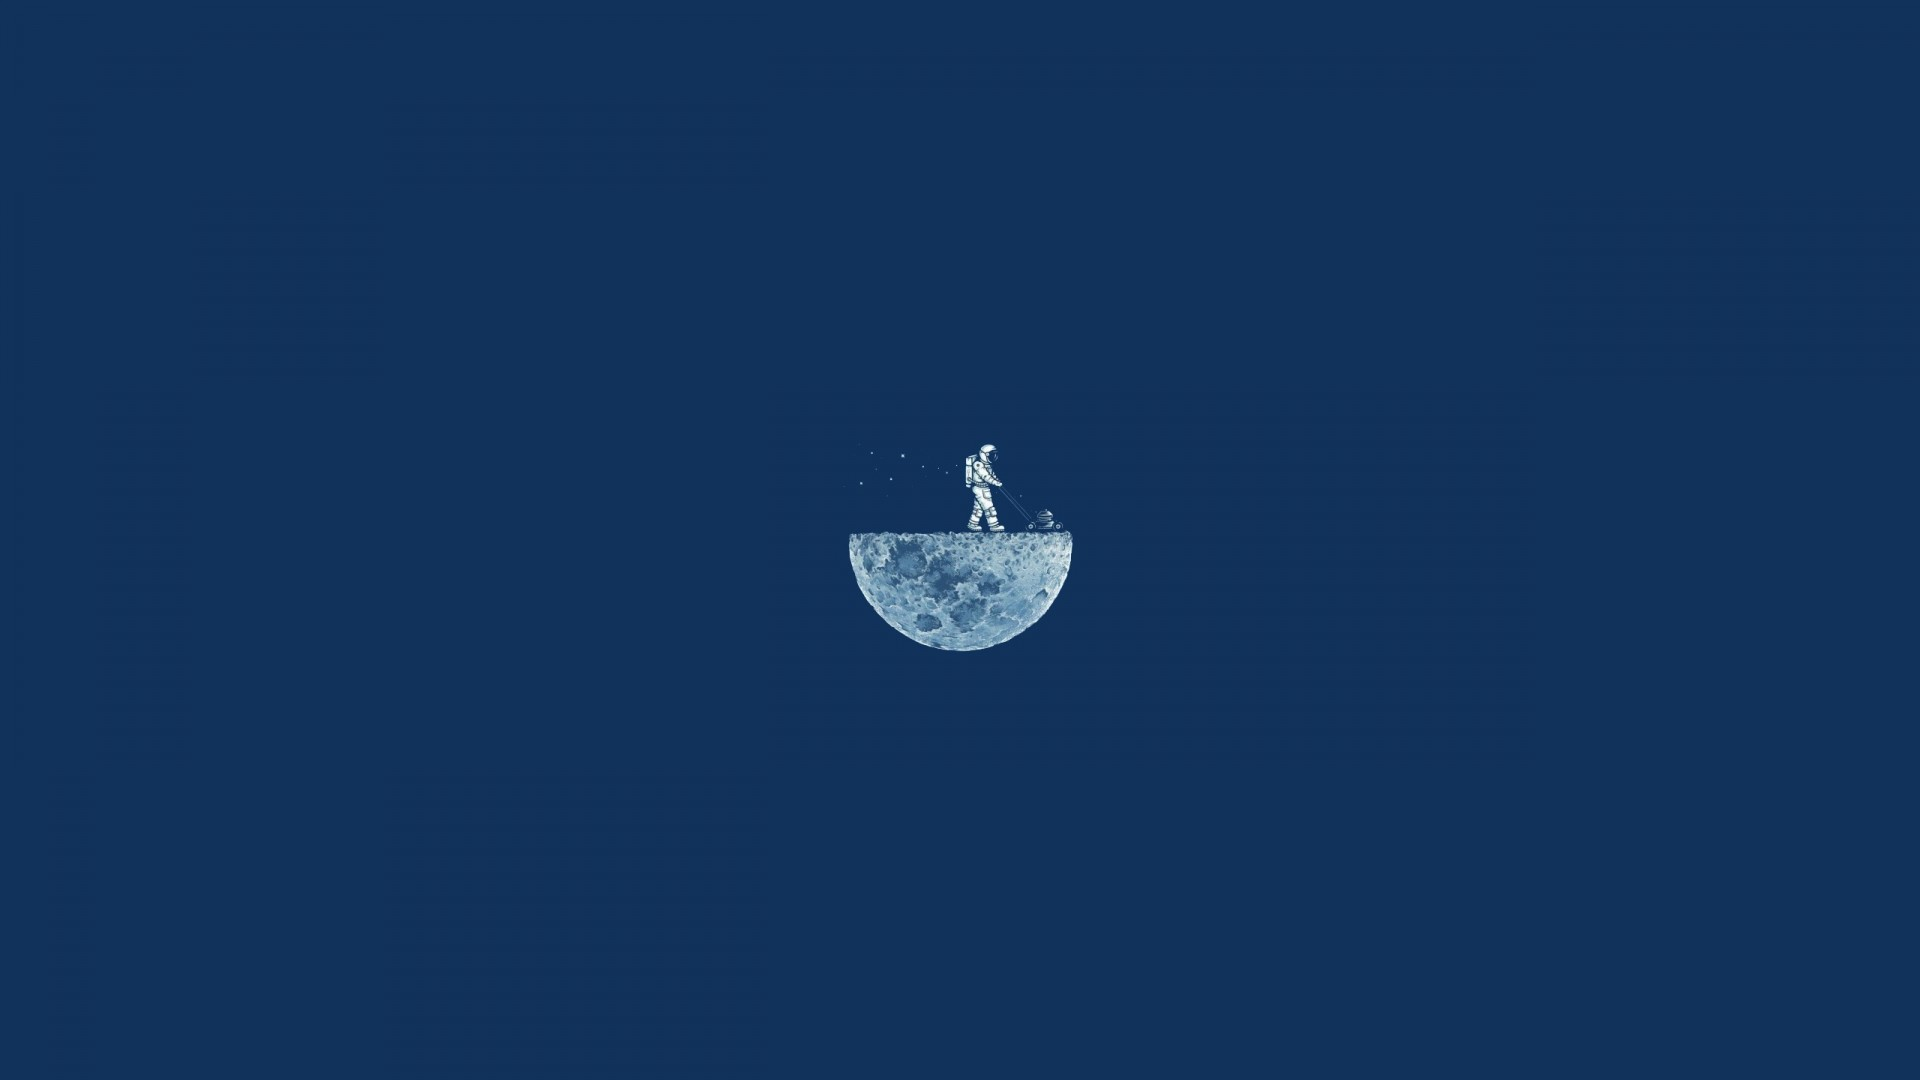 Wallpaper Moon Mow 4k Hd Moon Minimalism Iphone Wallpaper Astronaut Blue Os 13442